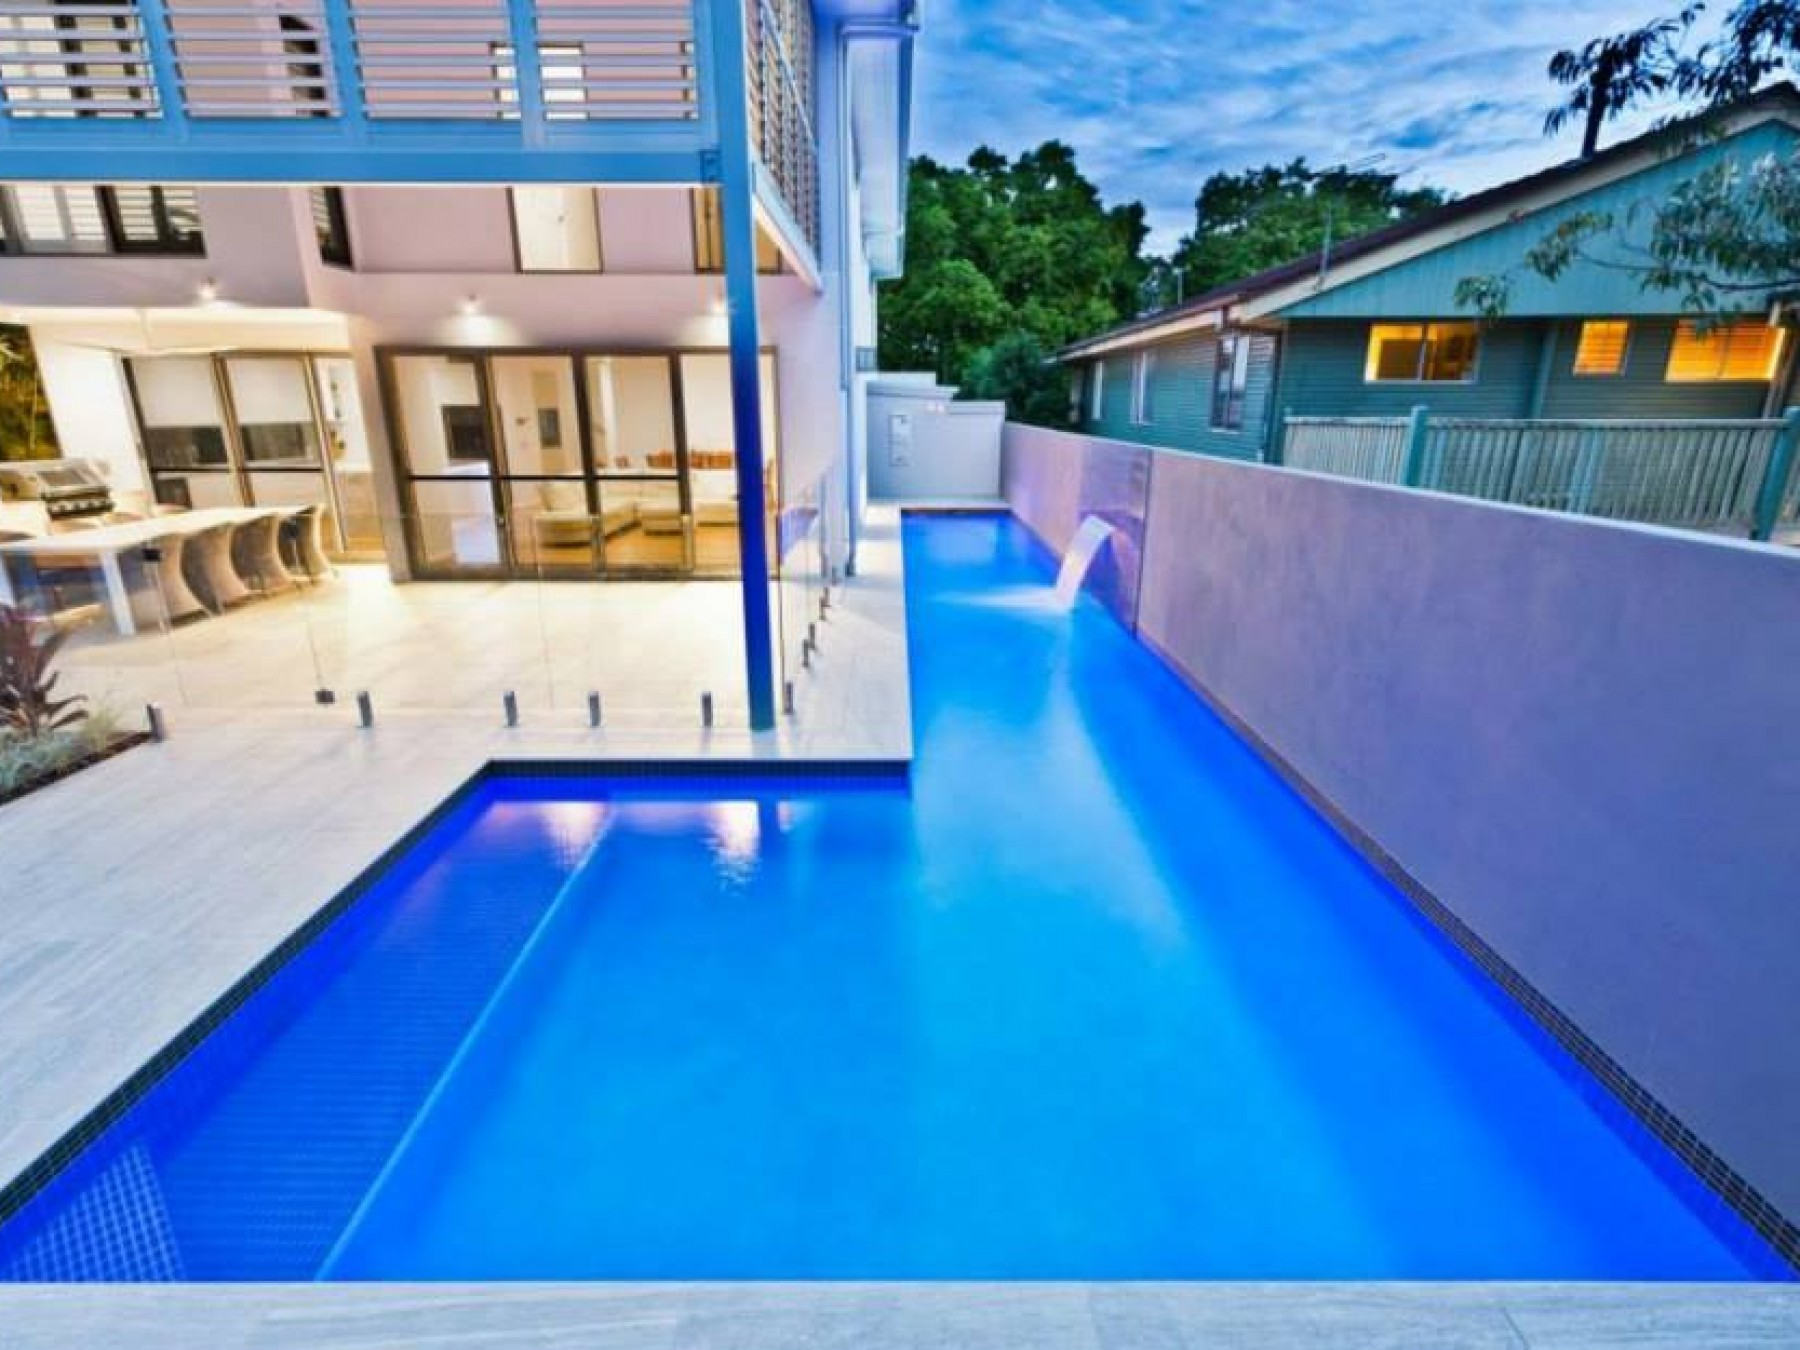 Selling or Leasing a pool in Marsden